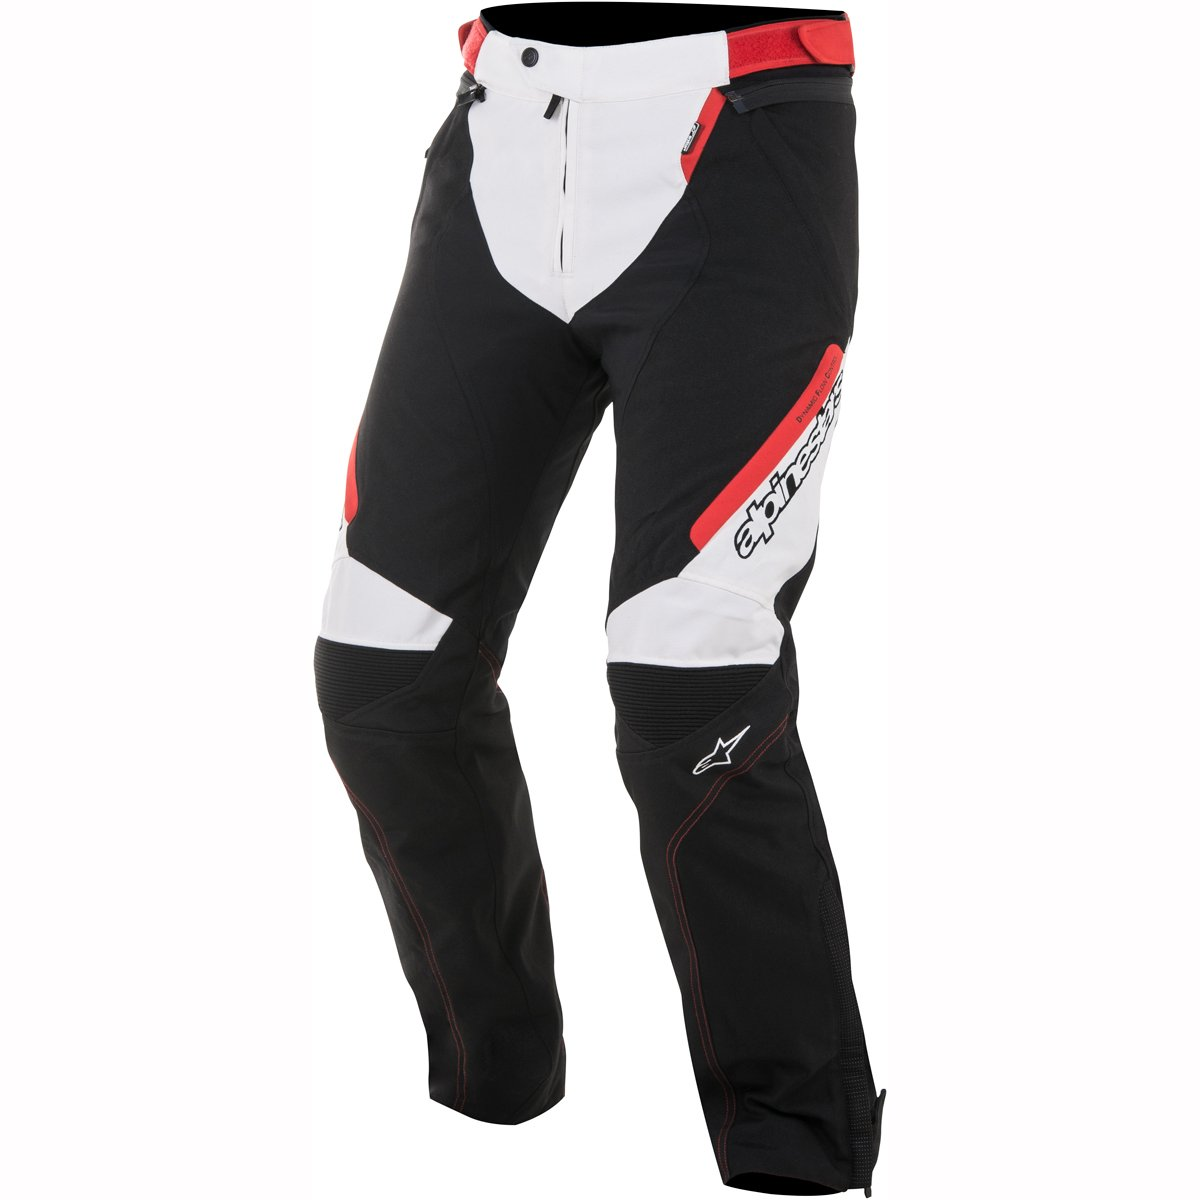 Alpinestars Raider Drystar All-Weather Sport Riding Textile Pants Black/White/Red LG